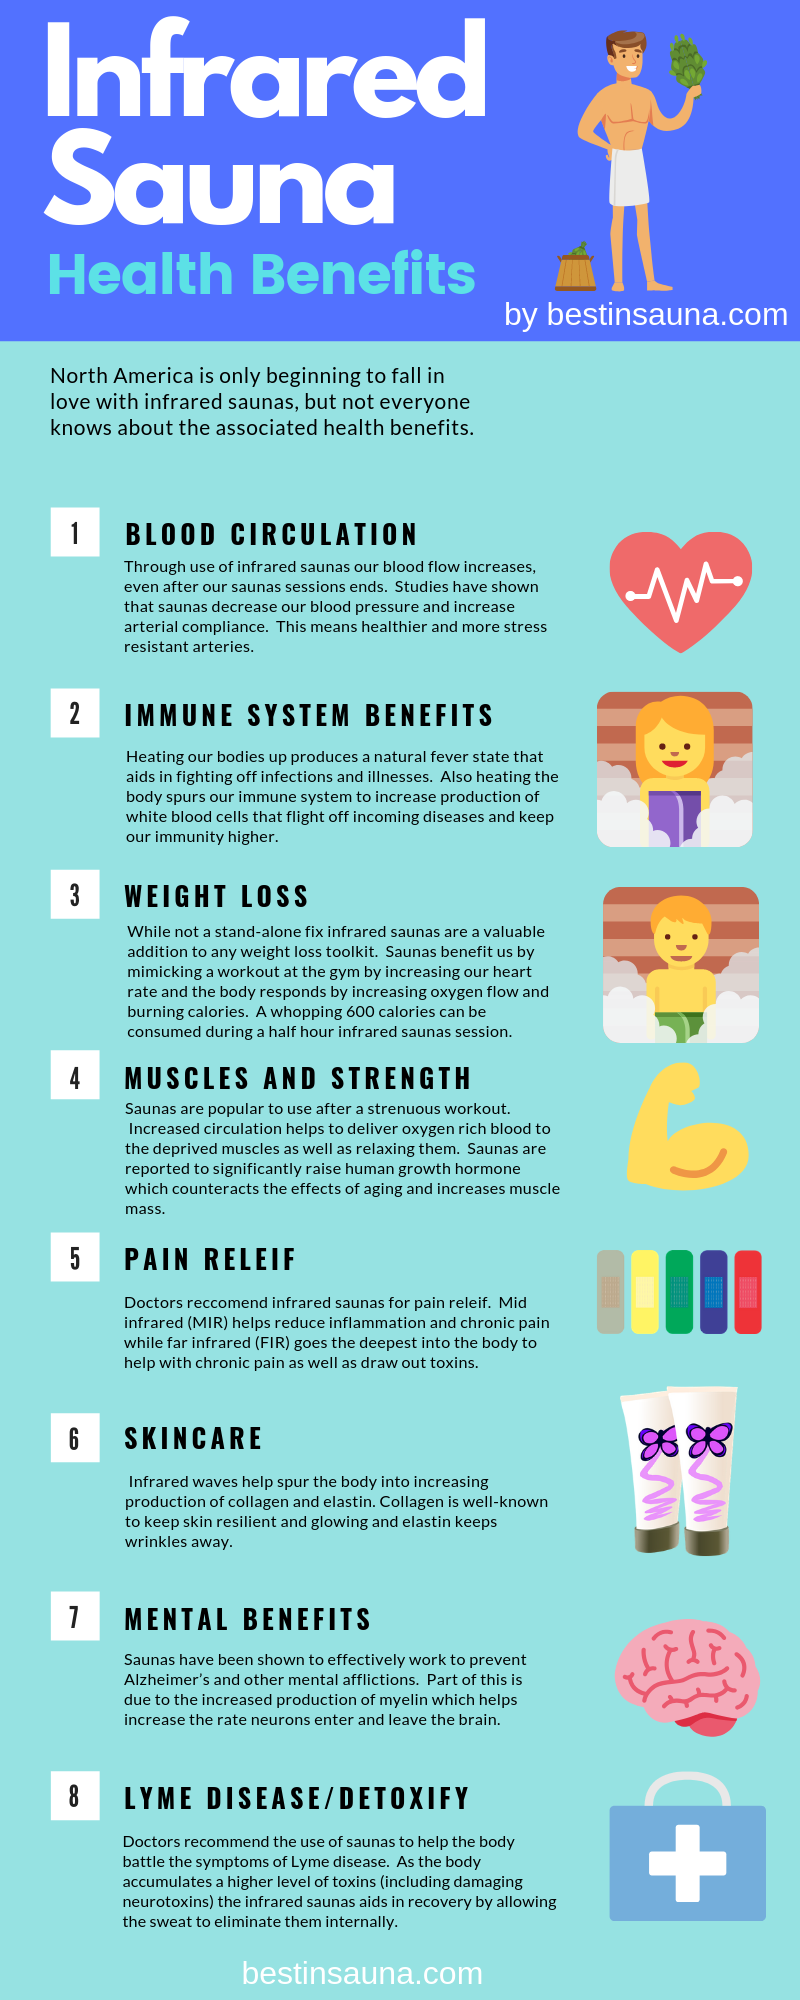 8 Reasons Why Infrared Saunas Are Highly Beneficial - Infographic